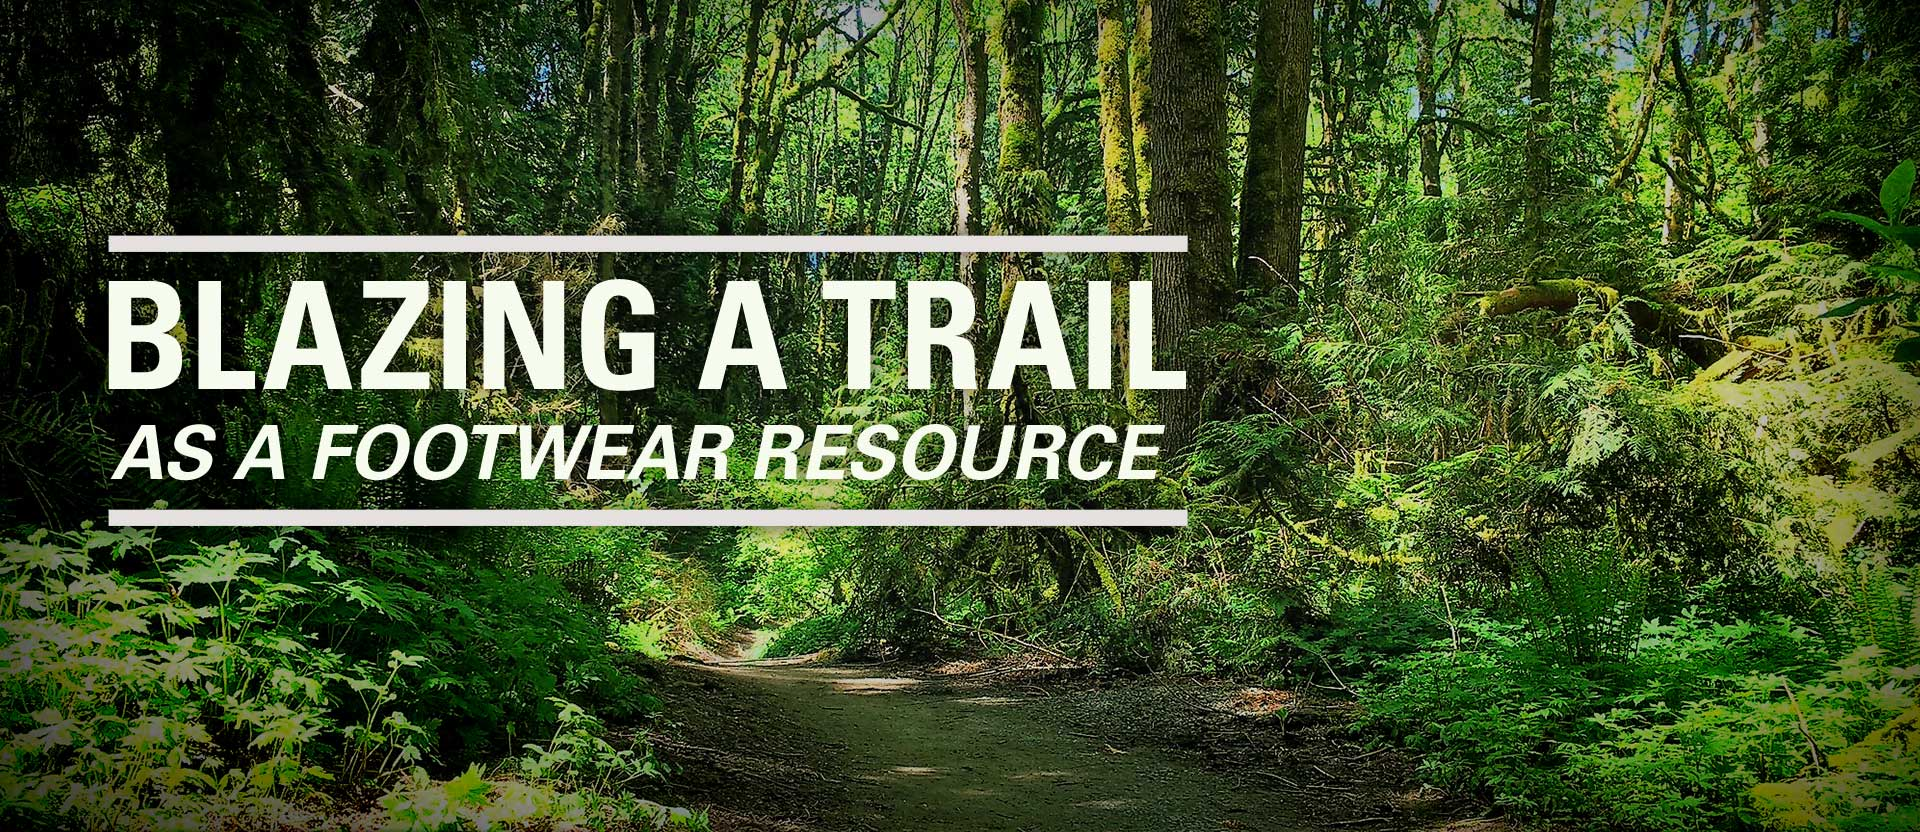 Blazing a trail as a footwear resource